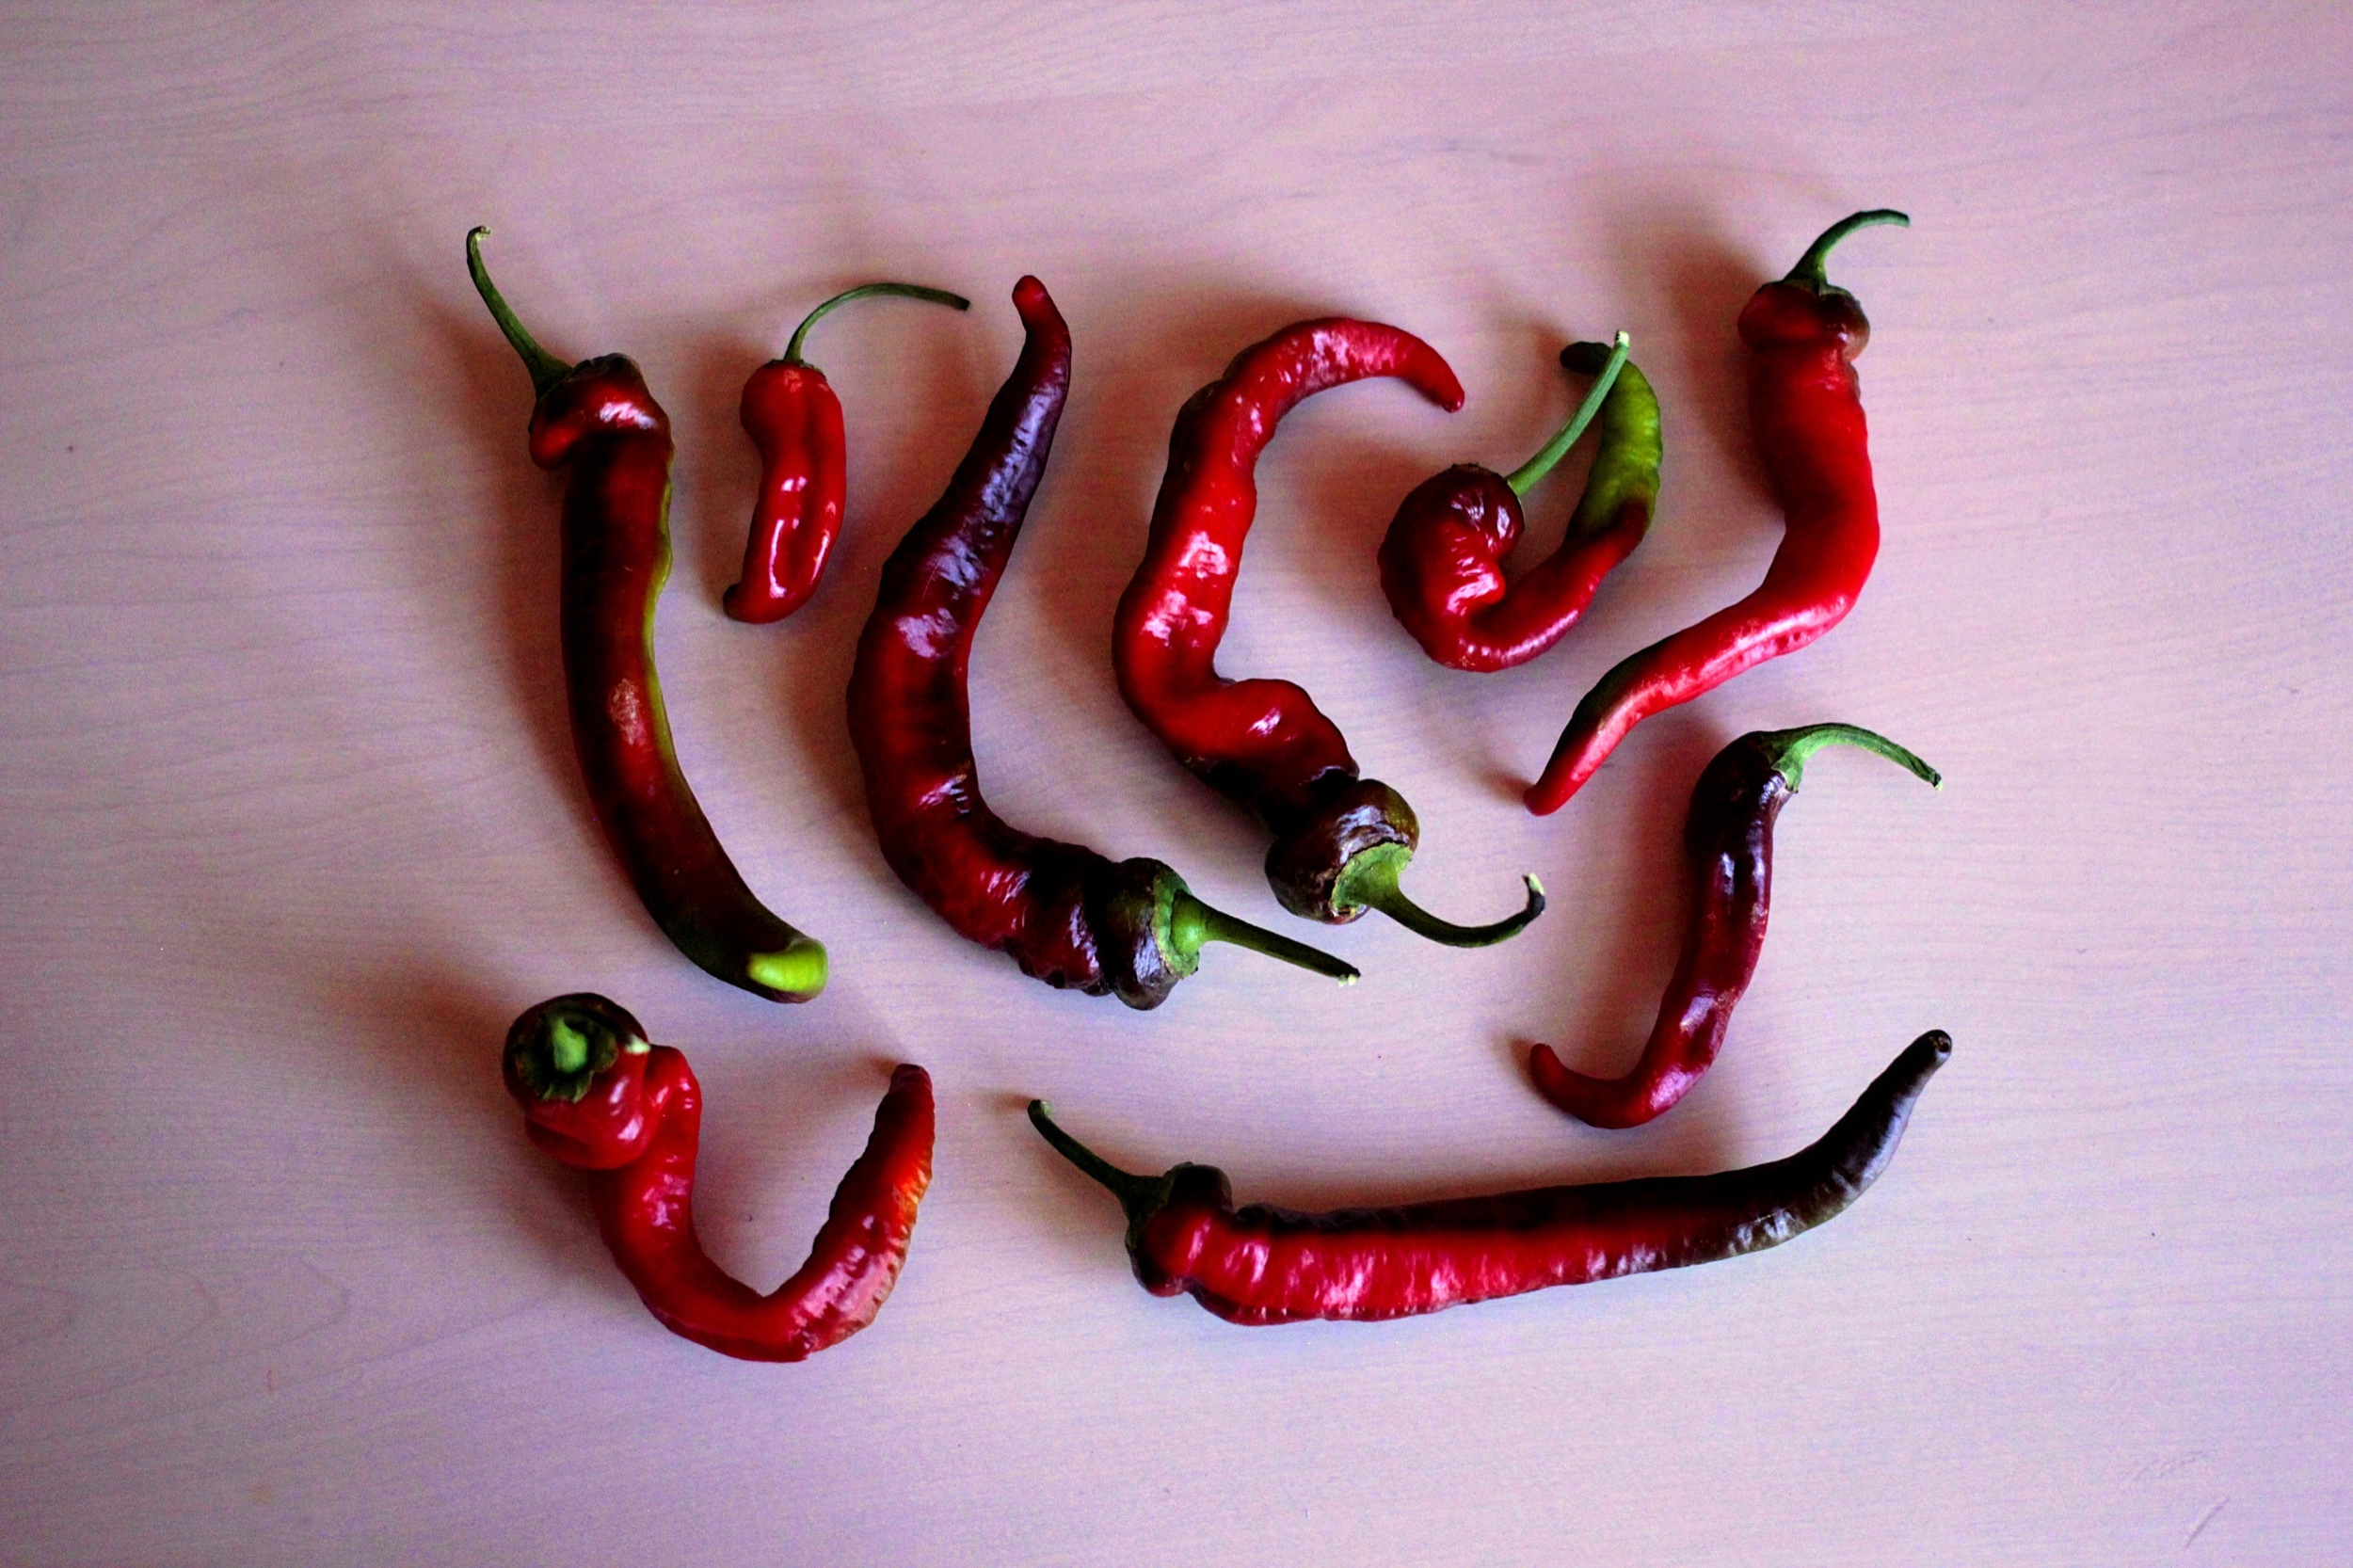 These peppers are sweet!